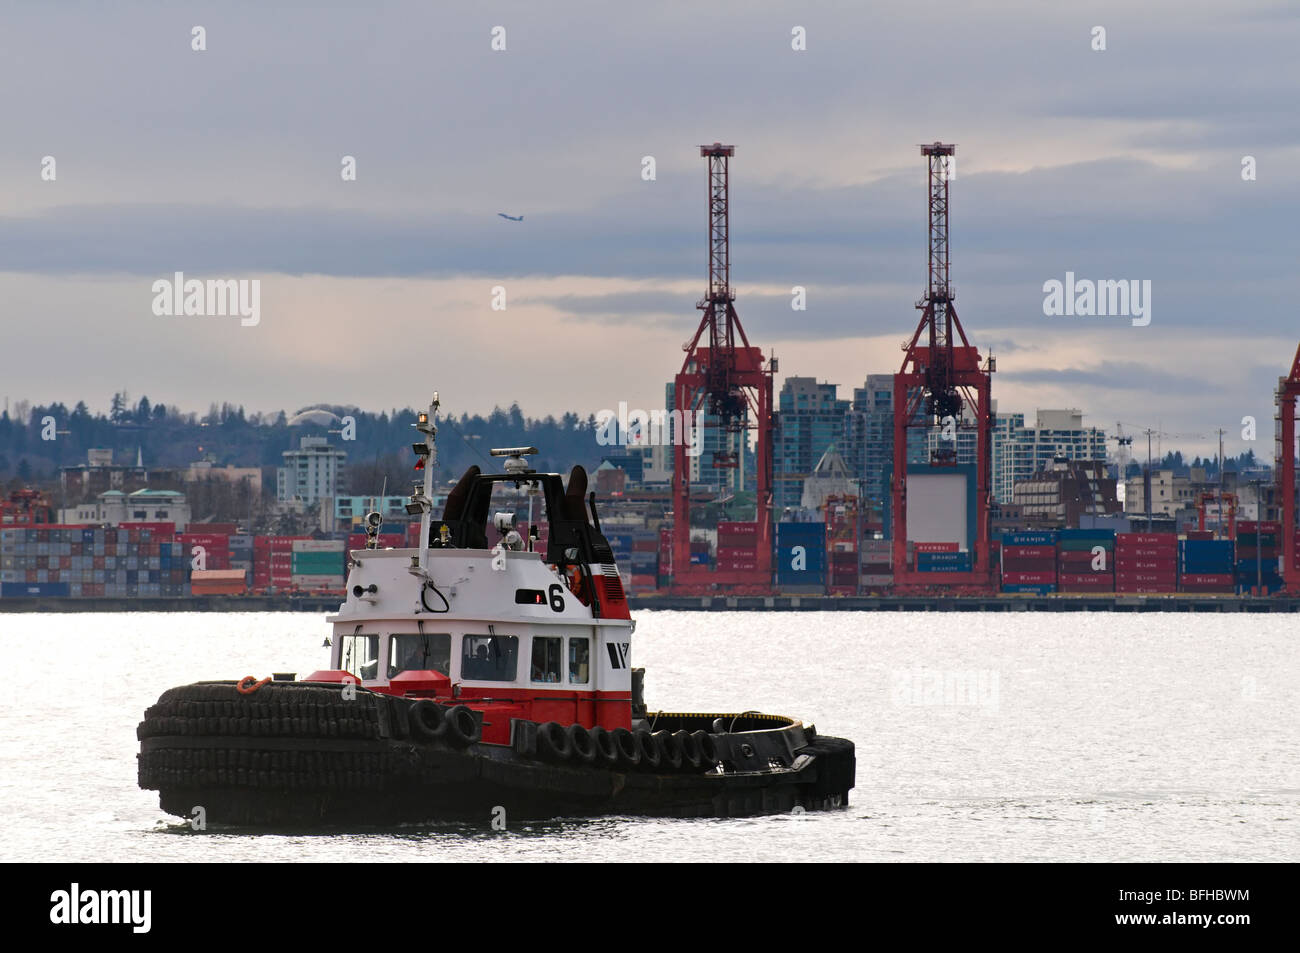 A tugboat in Vancouver BC's harbour. - Stock Image